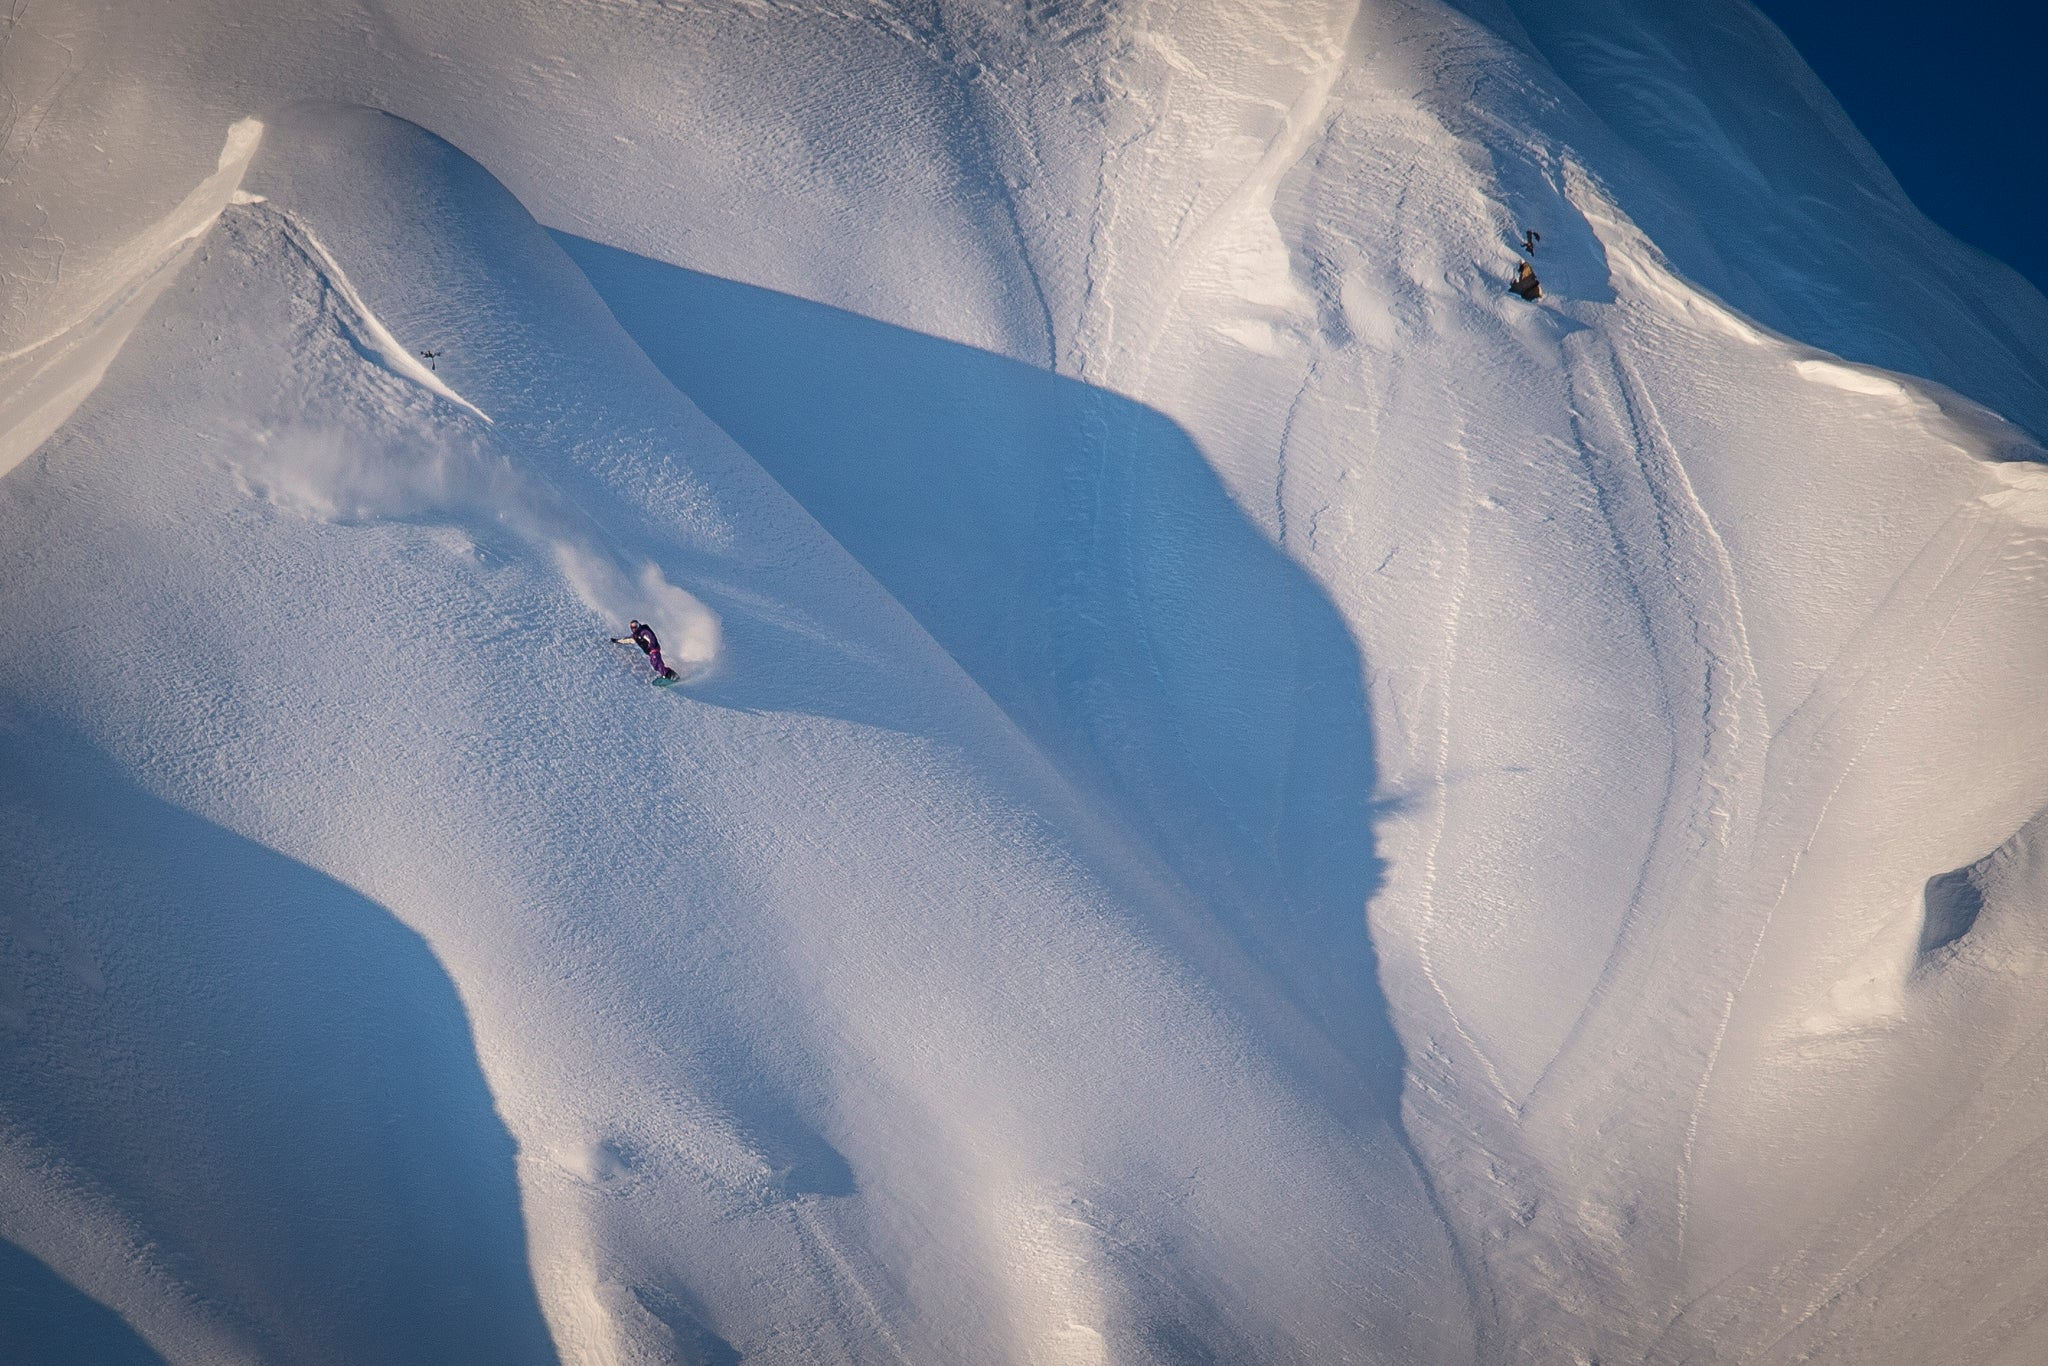 r: Mark McMorris // p: T. Bird/Natural Selection Tour/Red Bull Content Pool